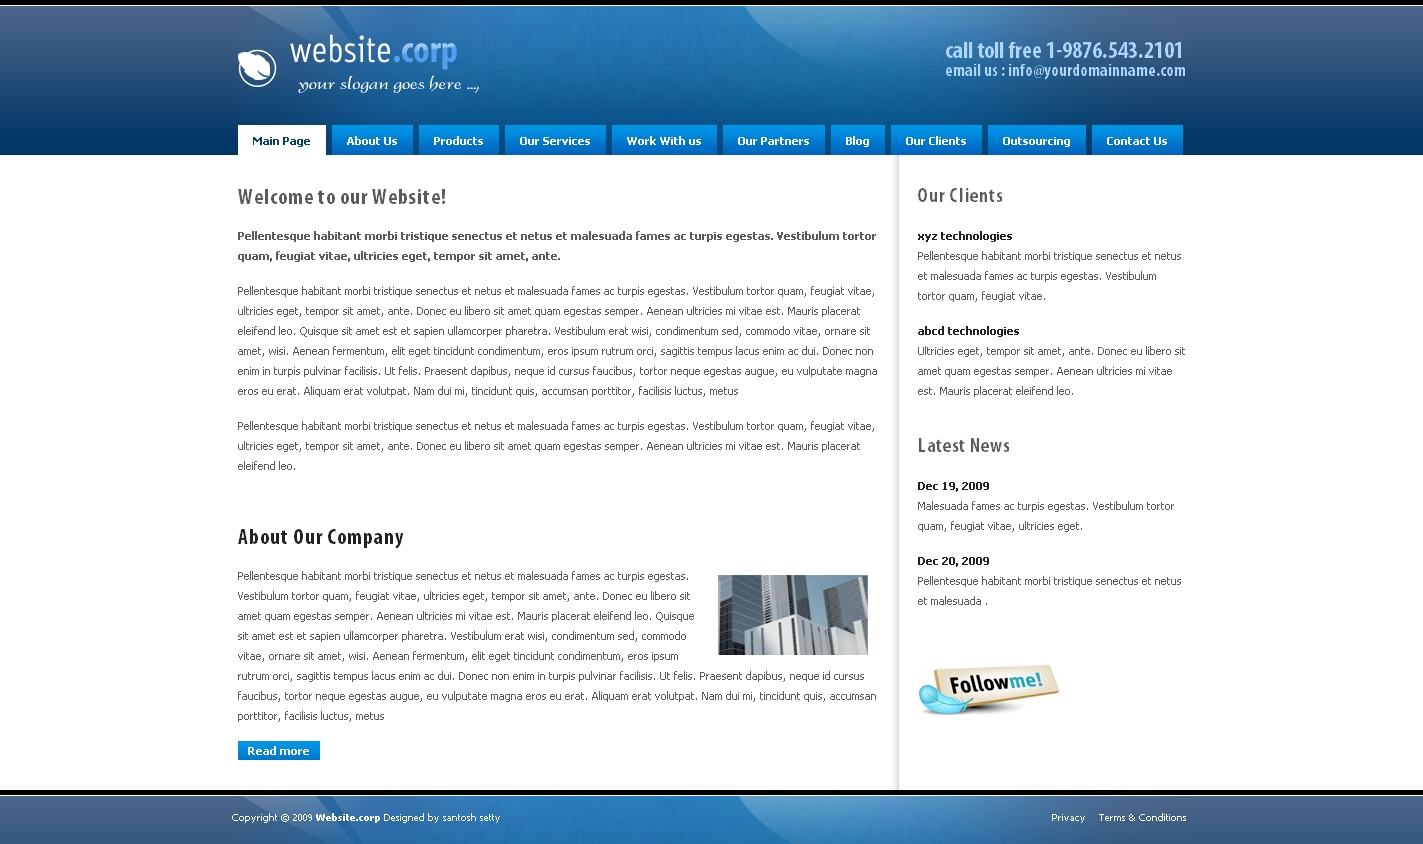 Free Download Website Corp Drupal 6 Theme Nulled Latest Version